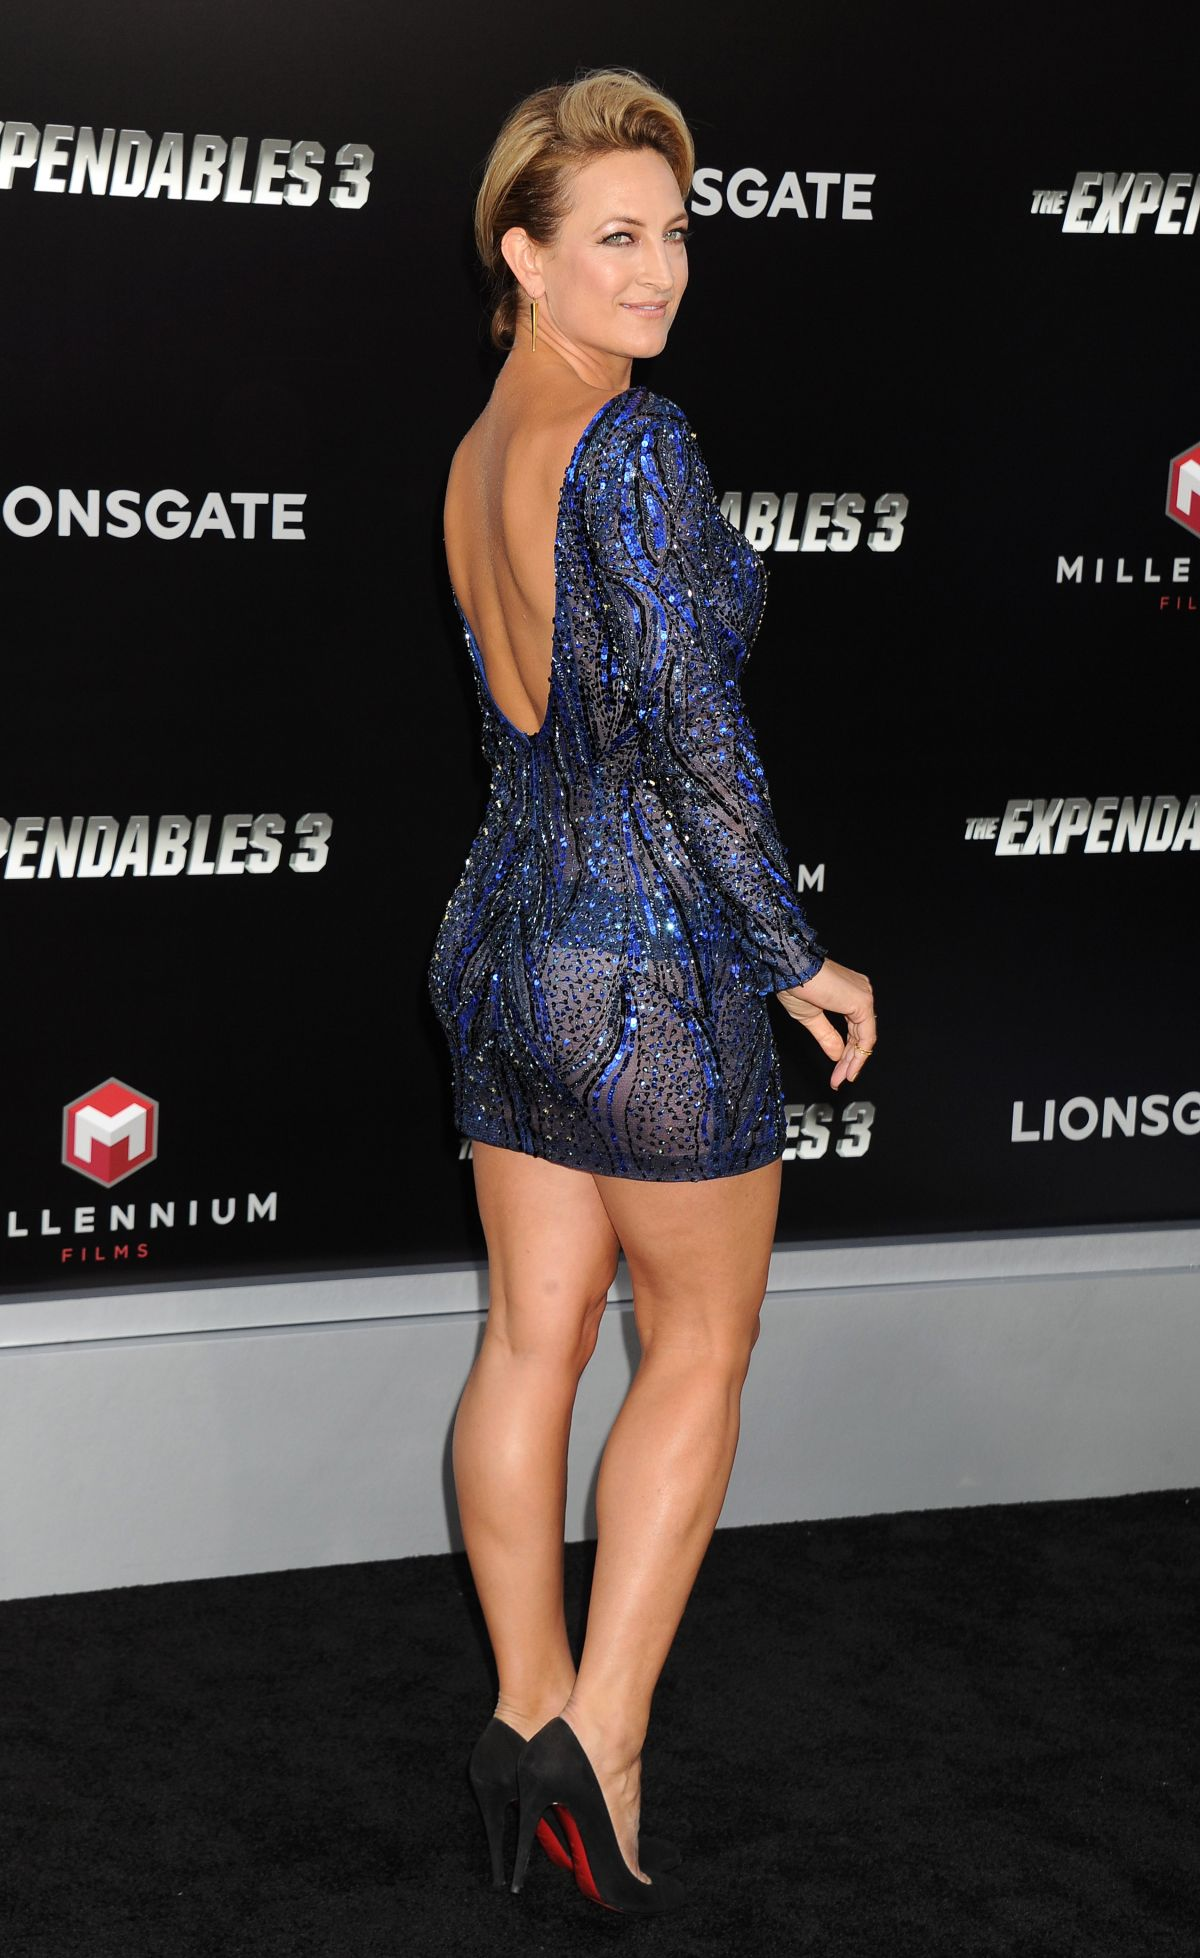 ZOE BELL at The Expendables 3 Premiere in Hollywood